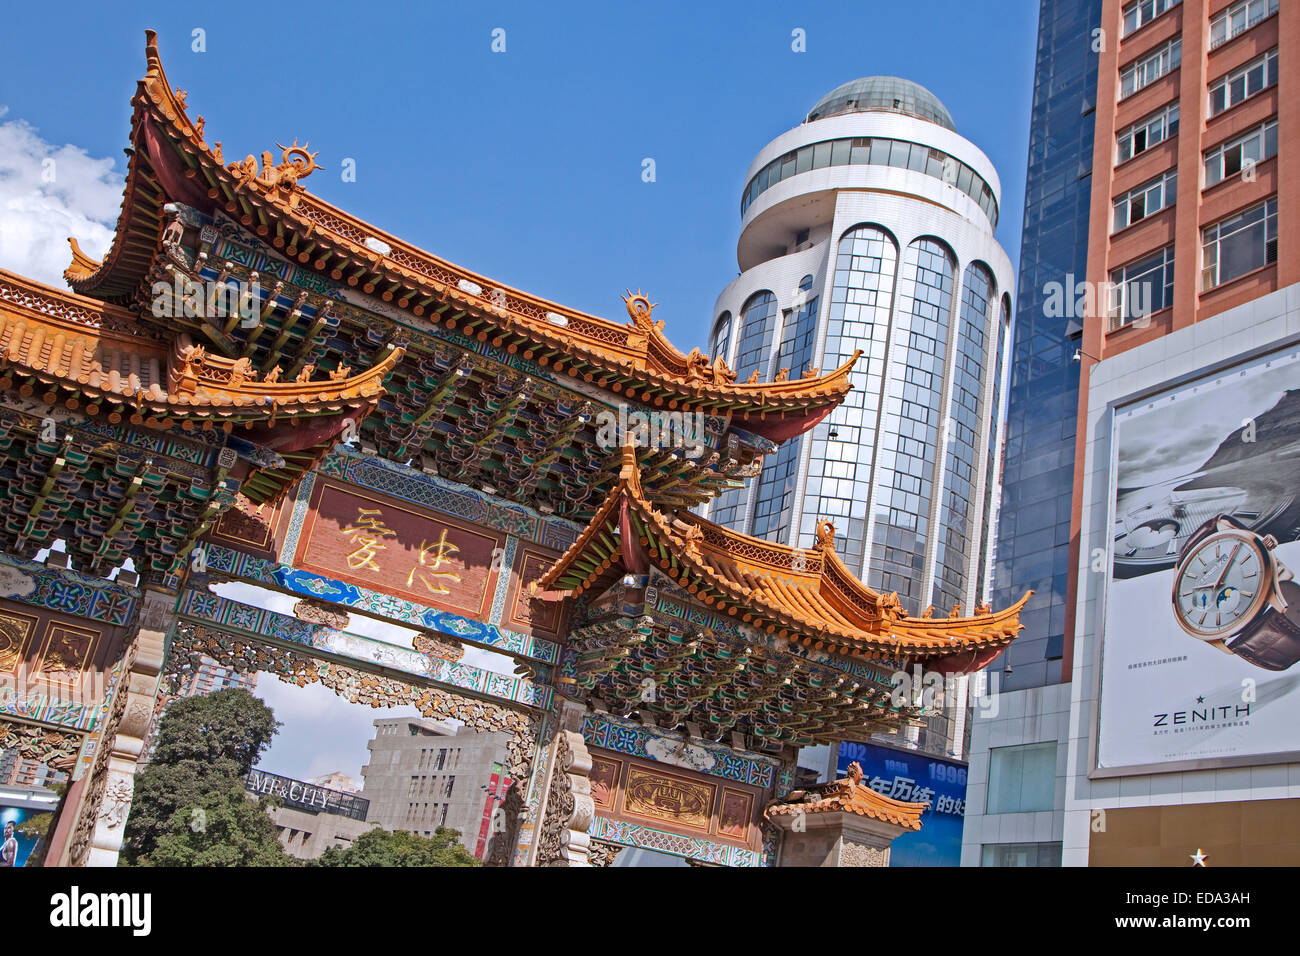 Old traditional Chinese town gate in the city center of Kunming, Yunnan province, China - Stock Image